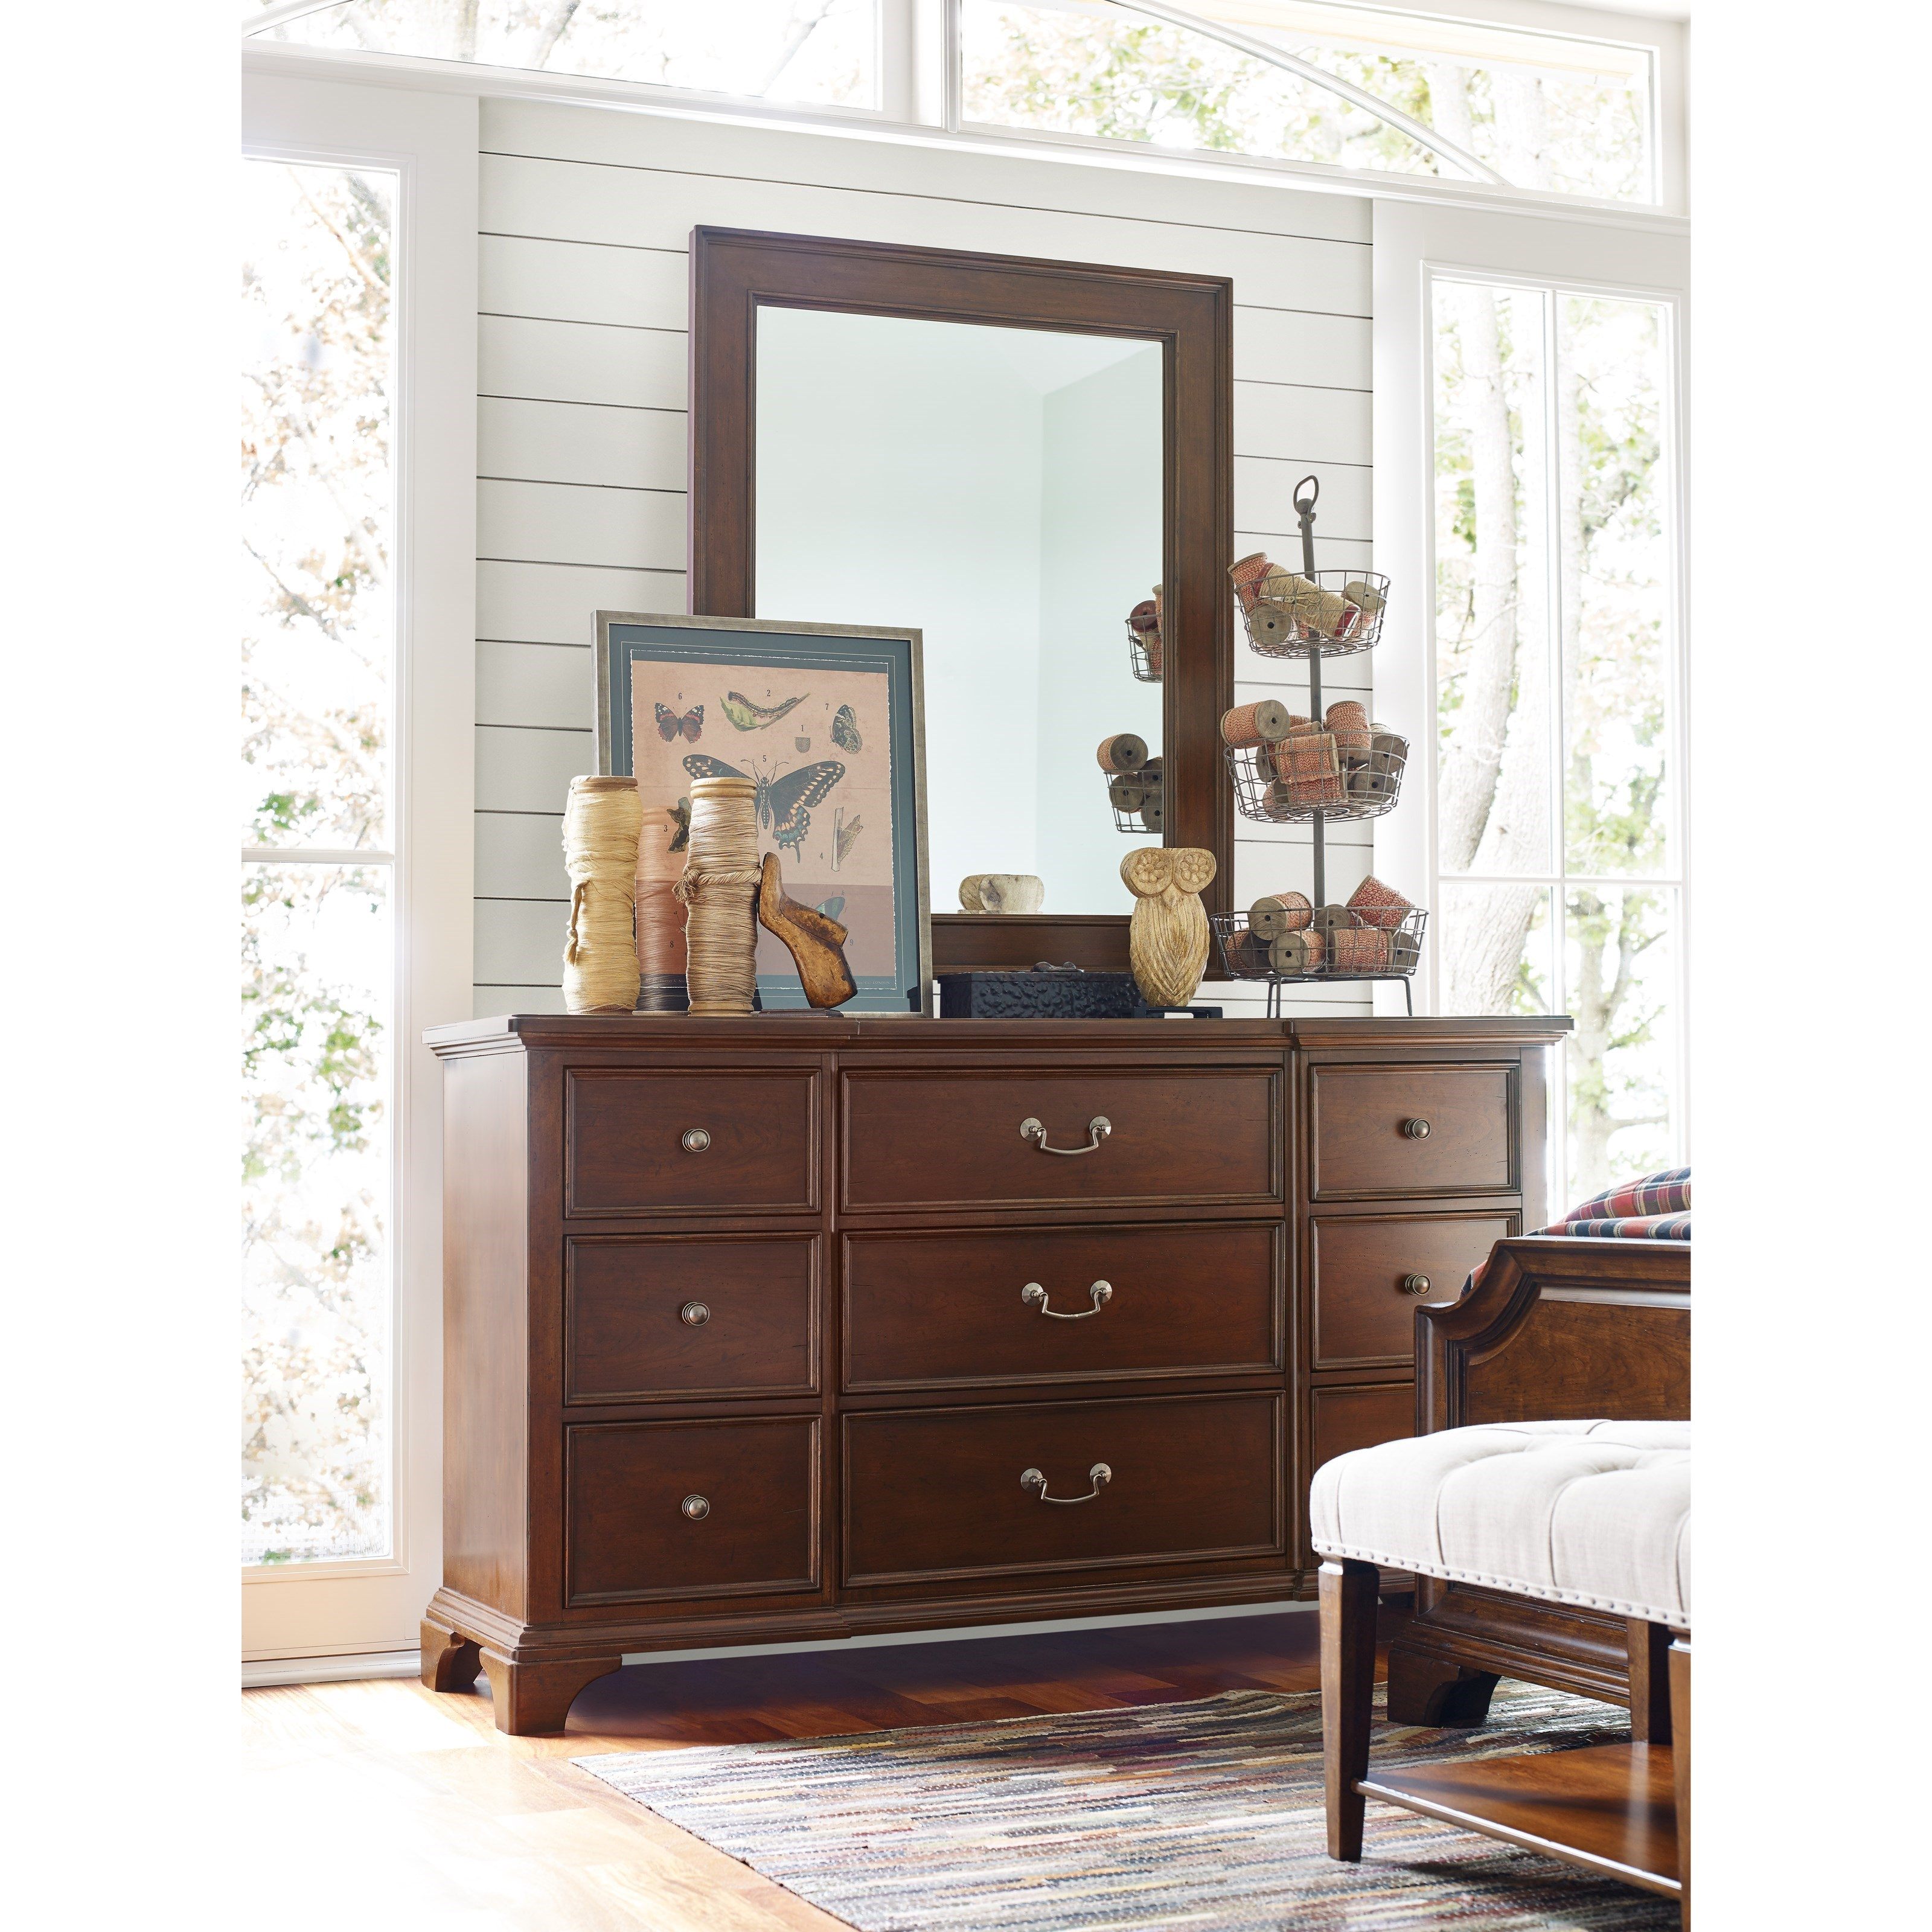 Rachael Ray Home by Legacy Classic Upstate 9 Drawer Dresser and Mirror - Item Number: 6040-1200+0200